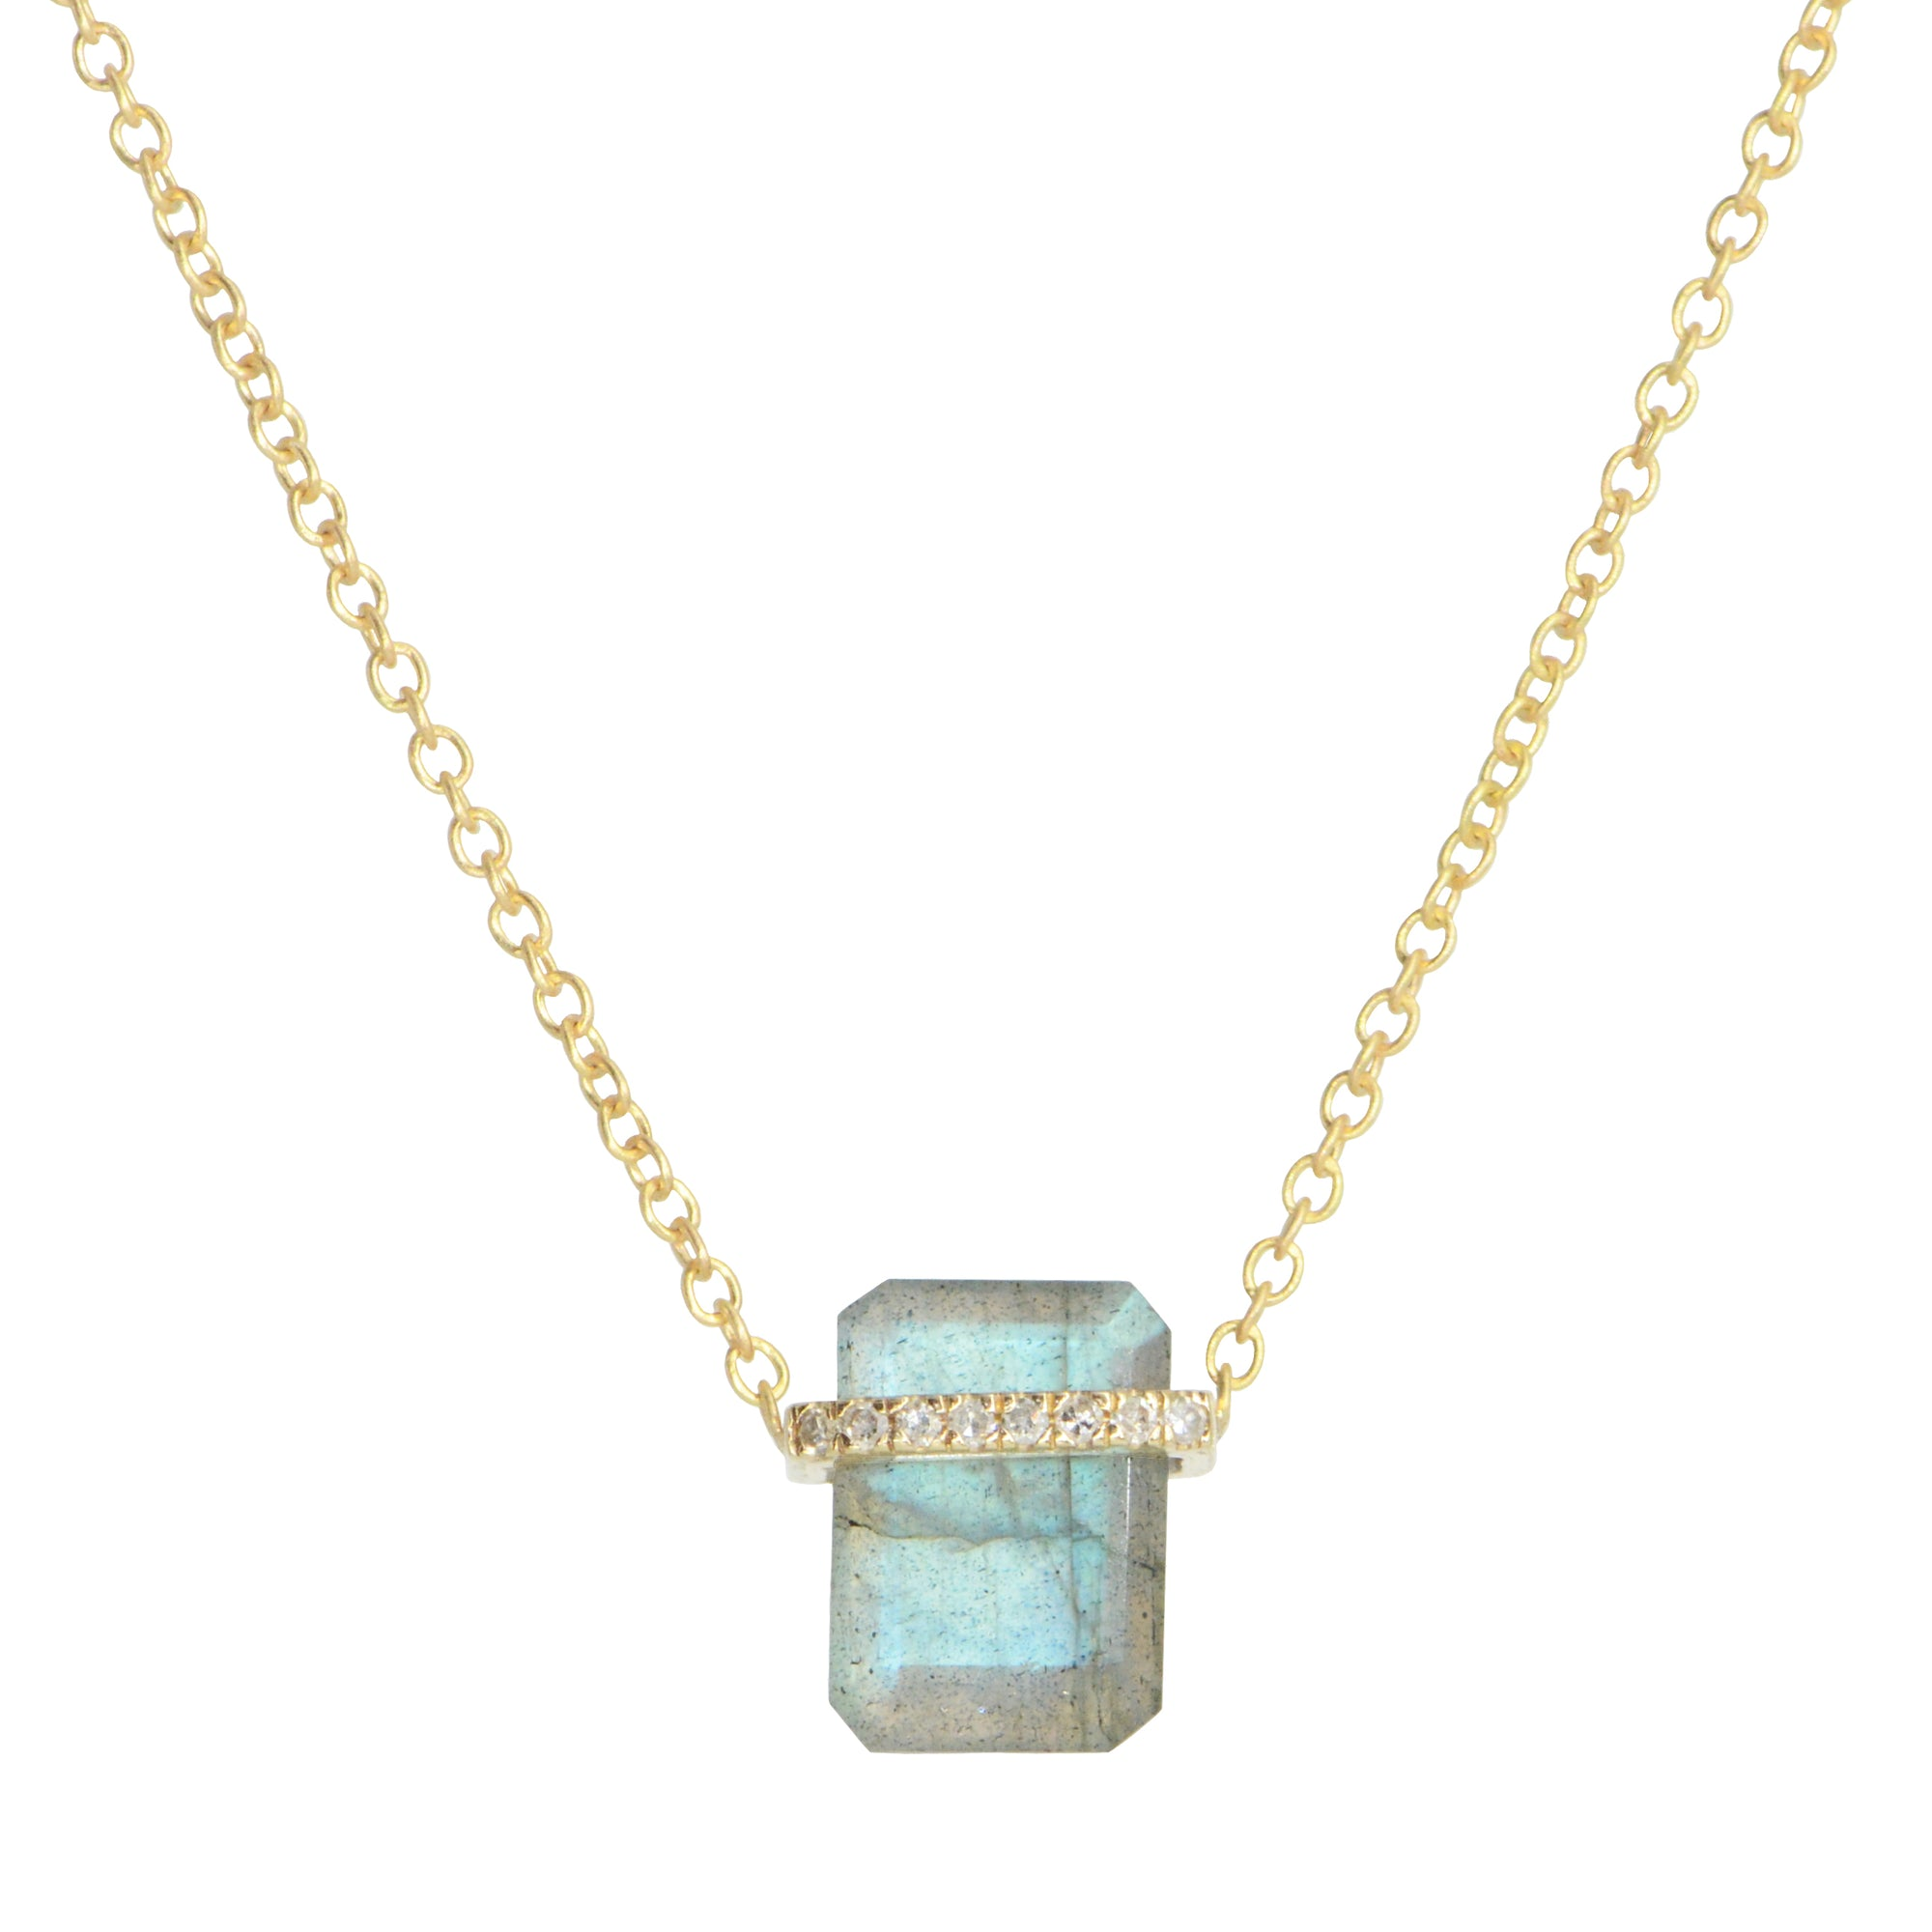 Labradorite Huggie Necklace With Diamonds Mini in 14k Gold